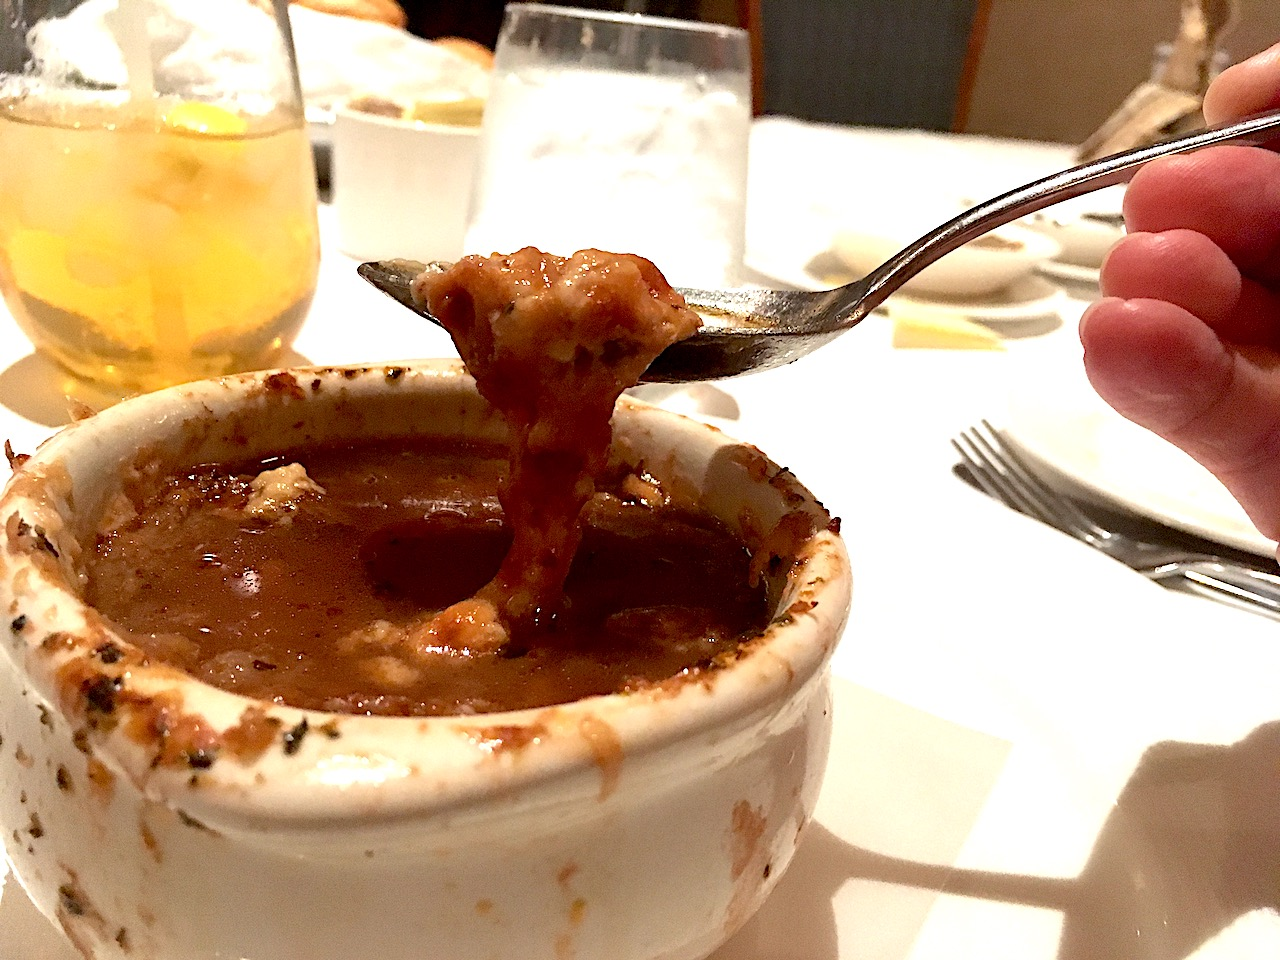 French Onion Soup at Lumiere's on board the Disney cruise ships is one of the best onion french soups you'll ever have!